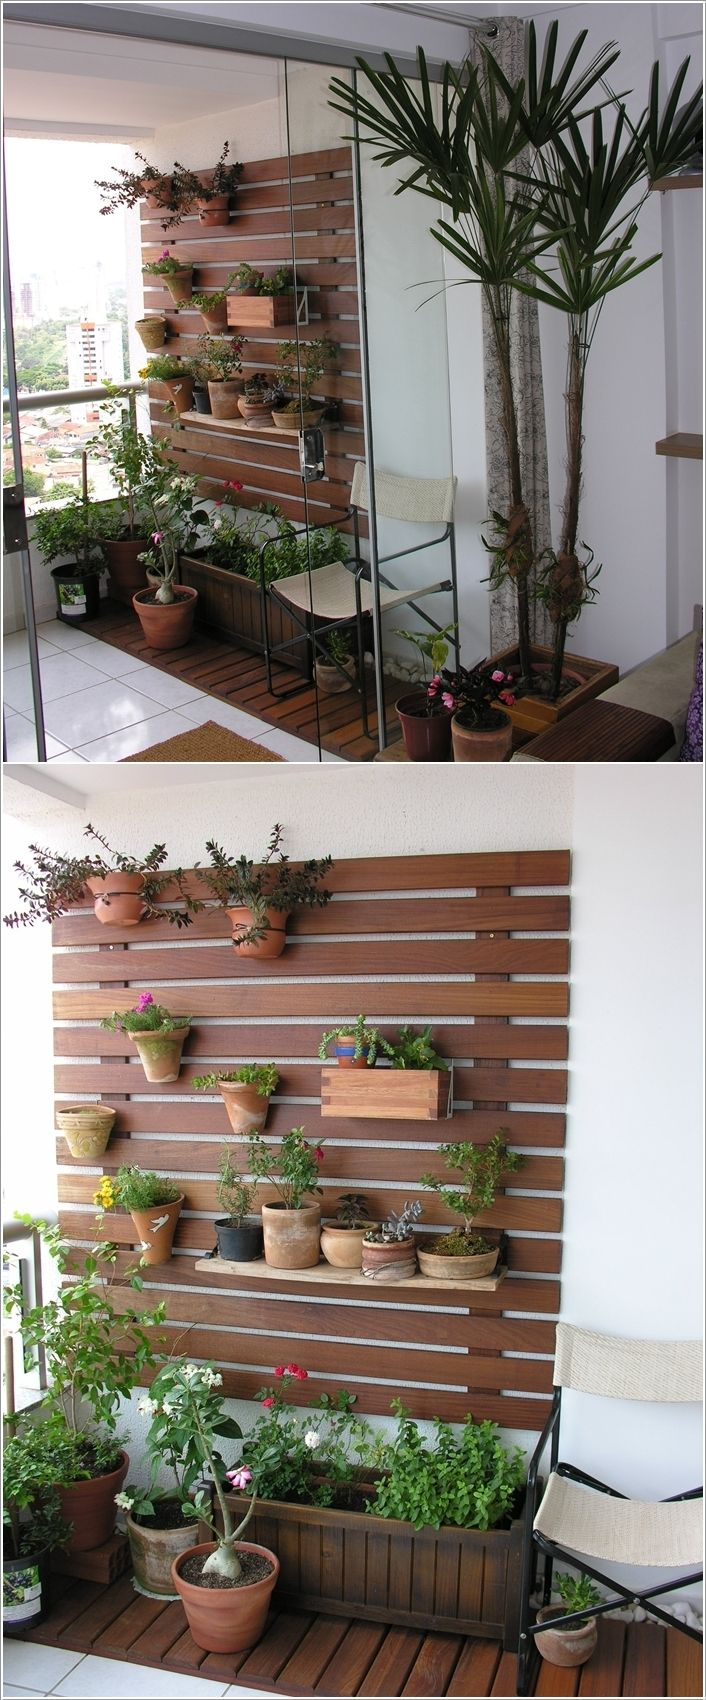 Build A Chic Vertical Garden #ideasforbalcony